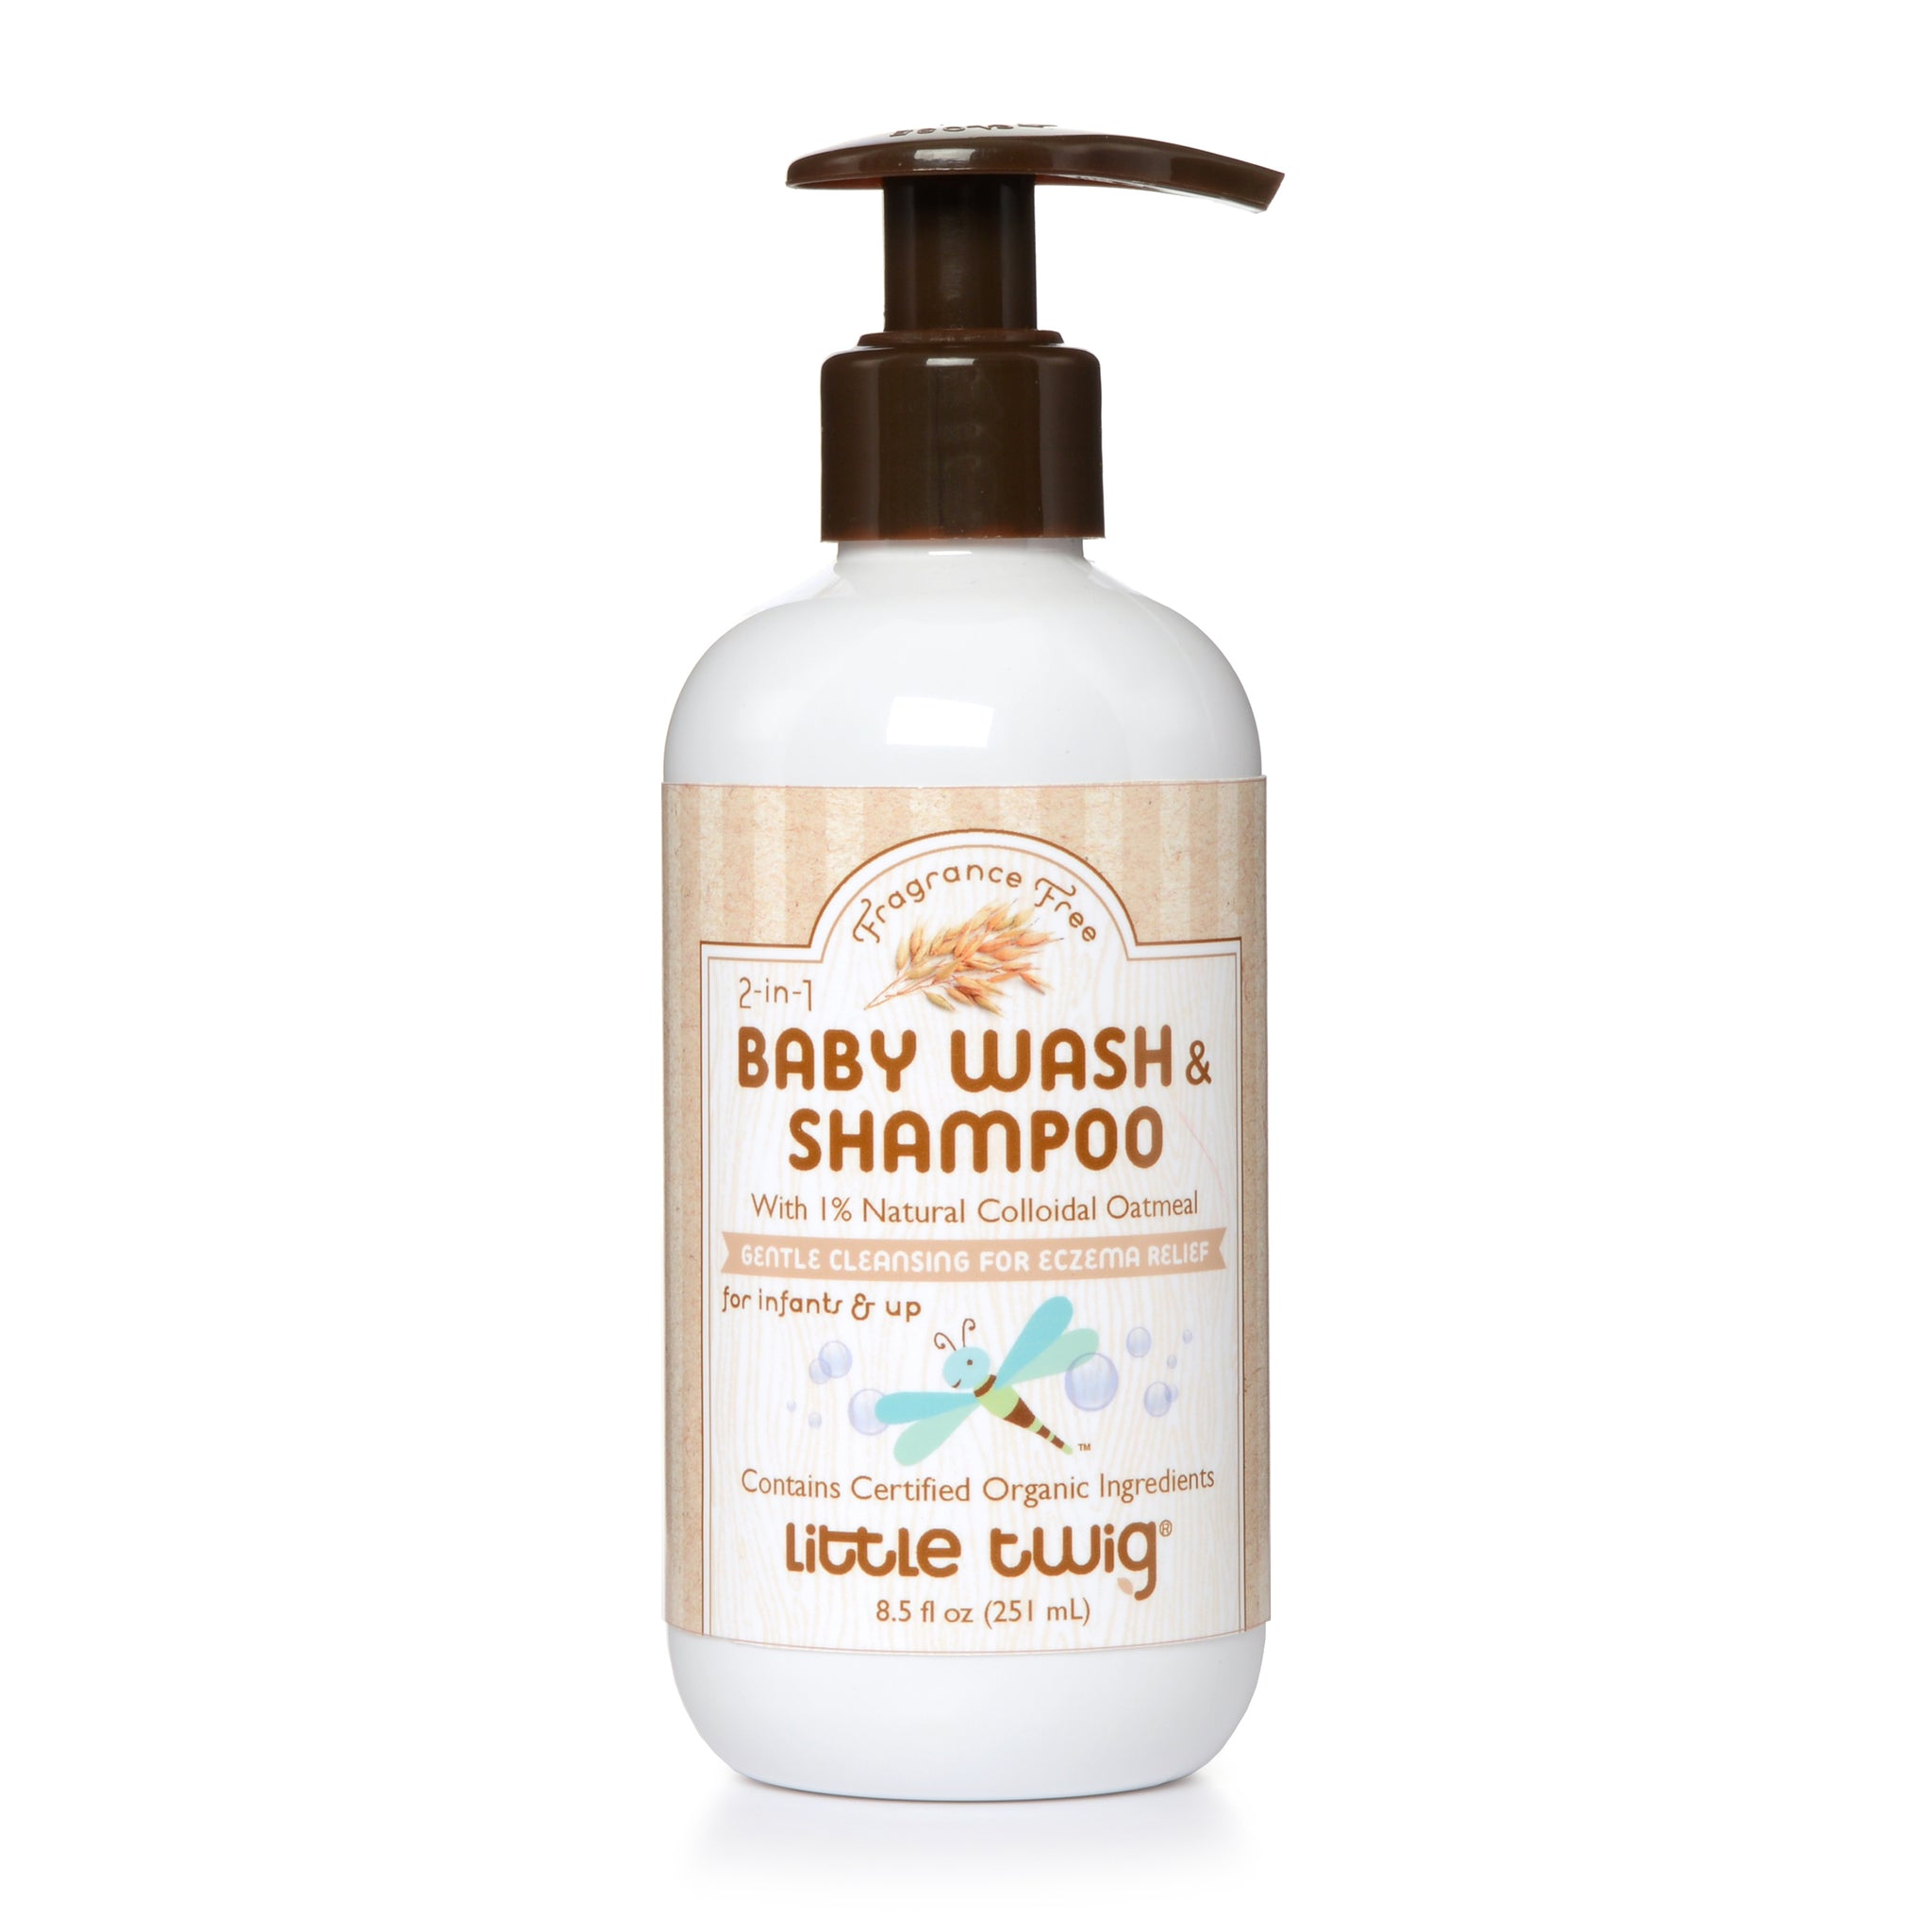 Colloidal Oat Baby Wash & Shampoo